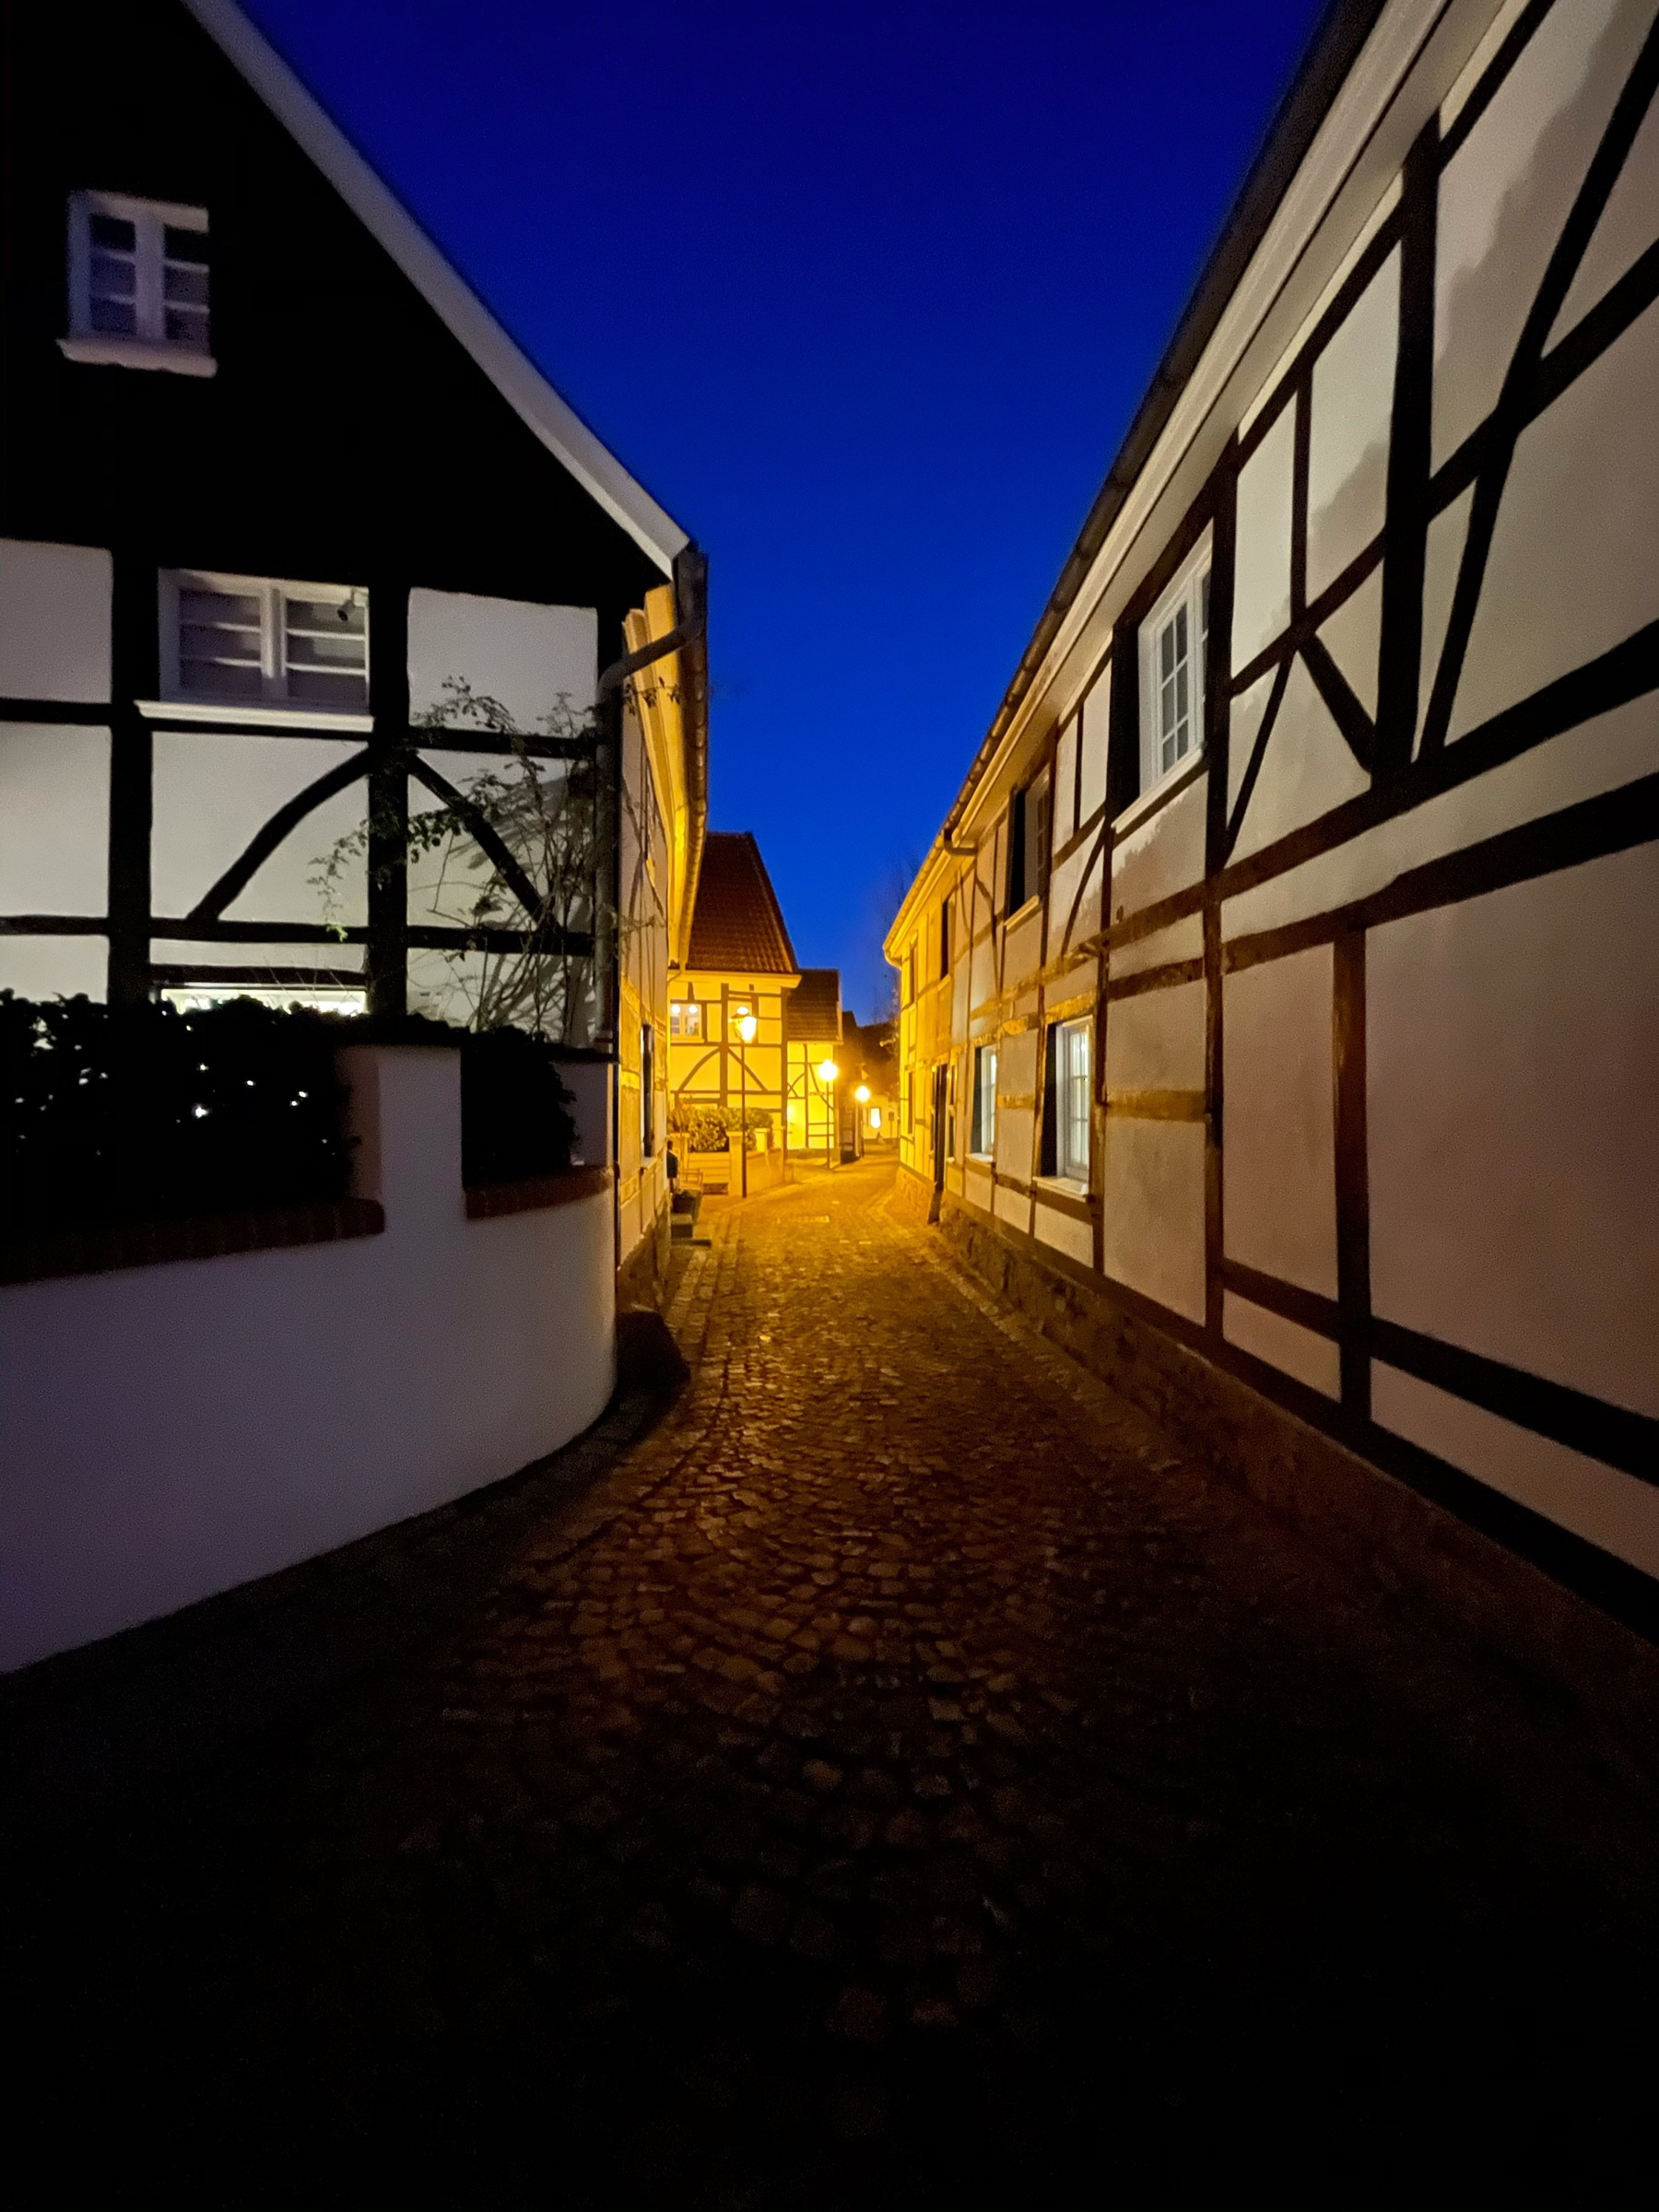 Narrow cobblestone street with framework houses on either side, shot at night with a dark blue sky and yellow lights in the distance.